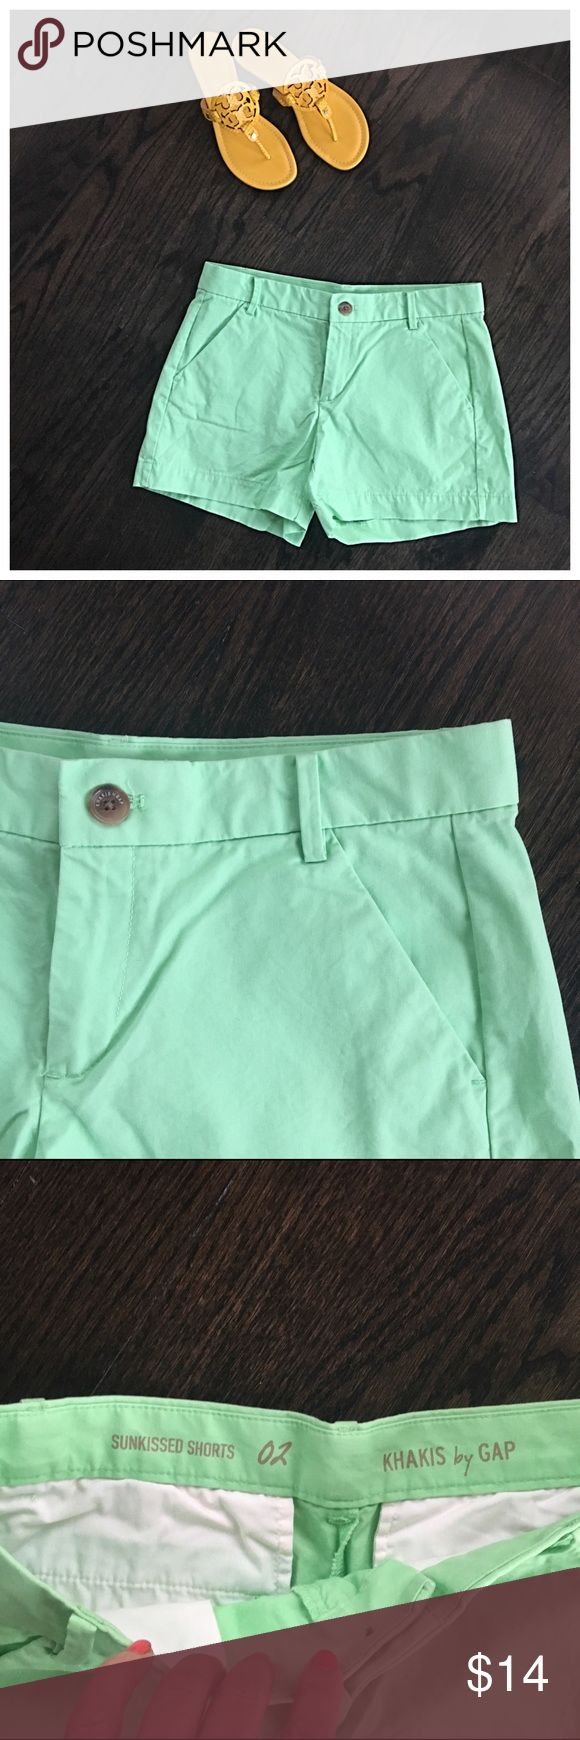 Gap Mint Green Shorts Gap sun kissed shorts in mint green. Size 2. Only worn once or twice. Like new condition. GAP Shorts